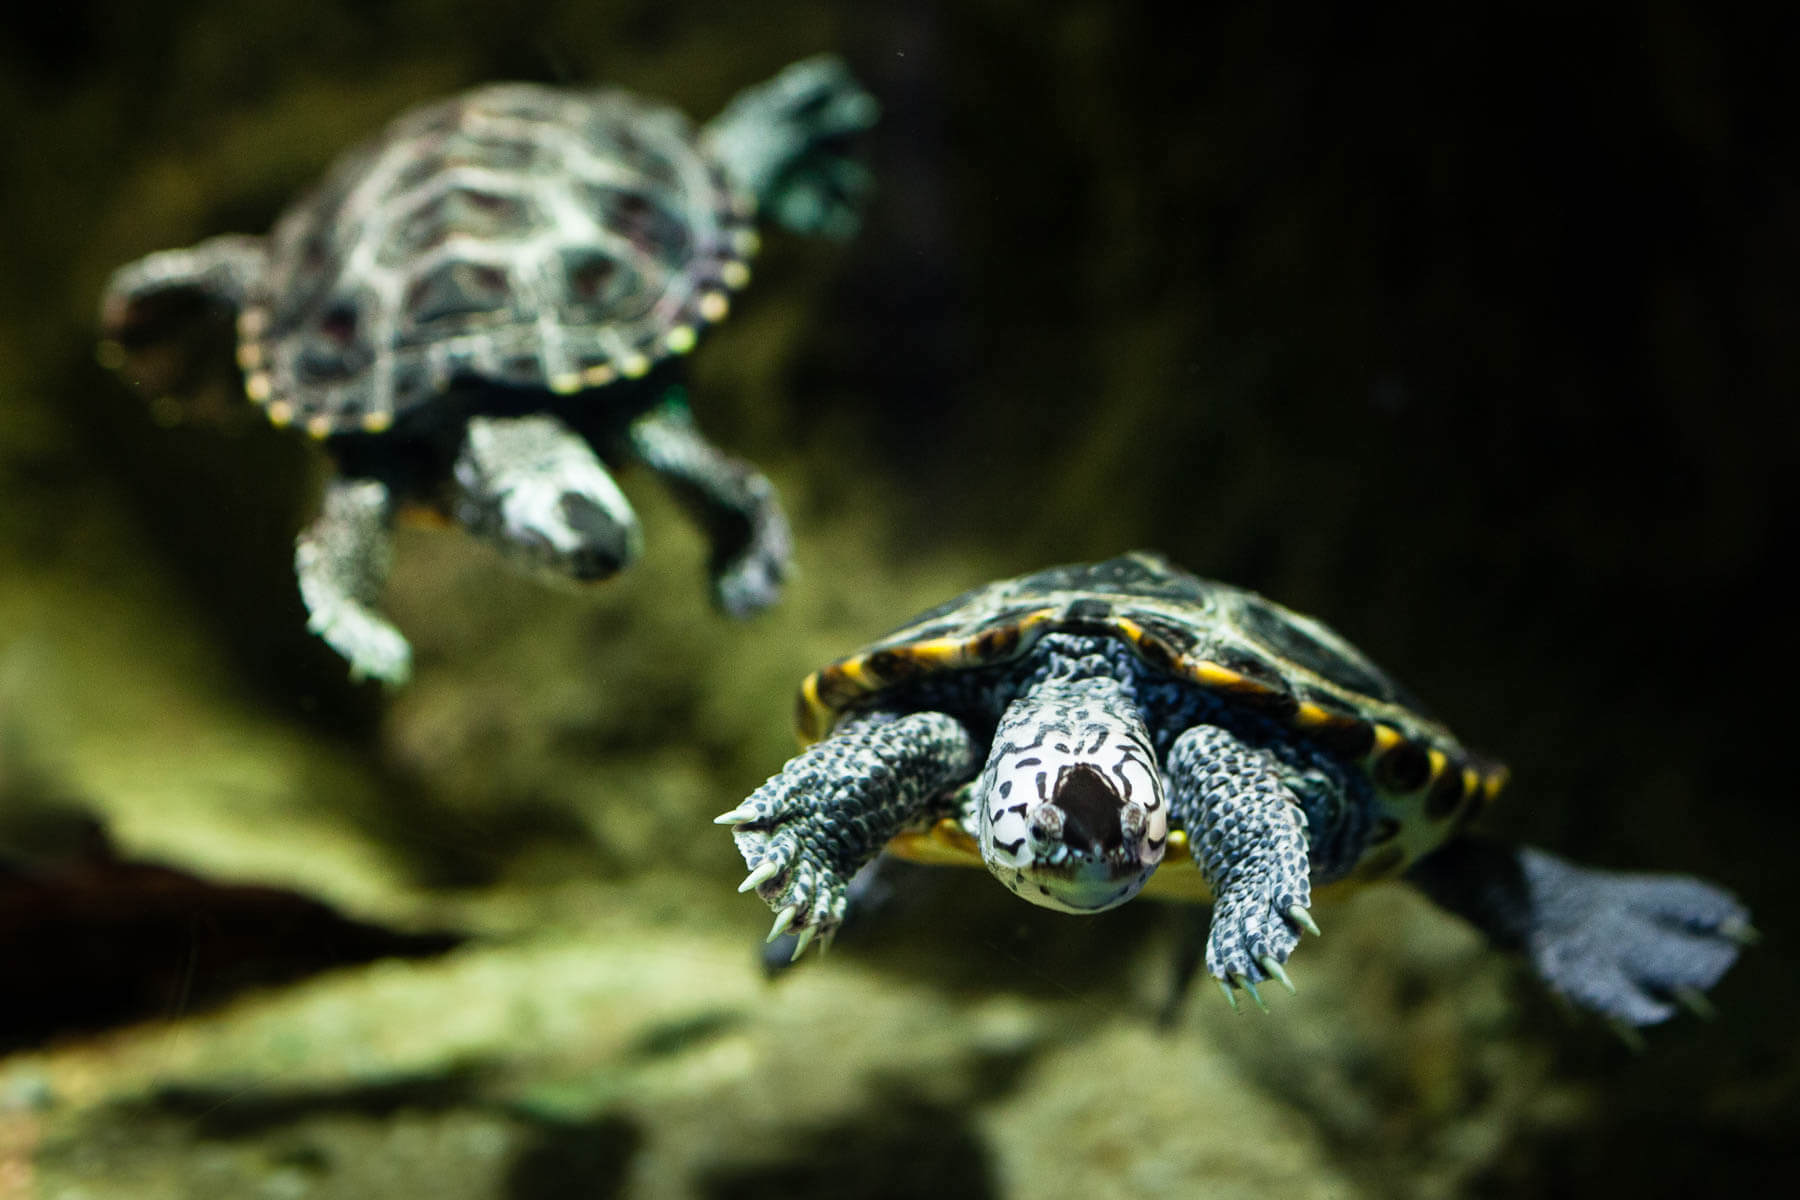 Two baby turtles swimming through water